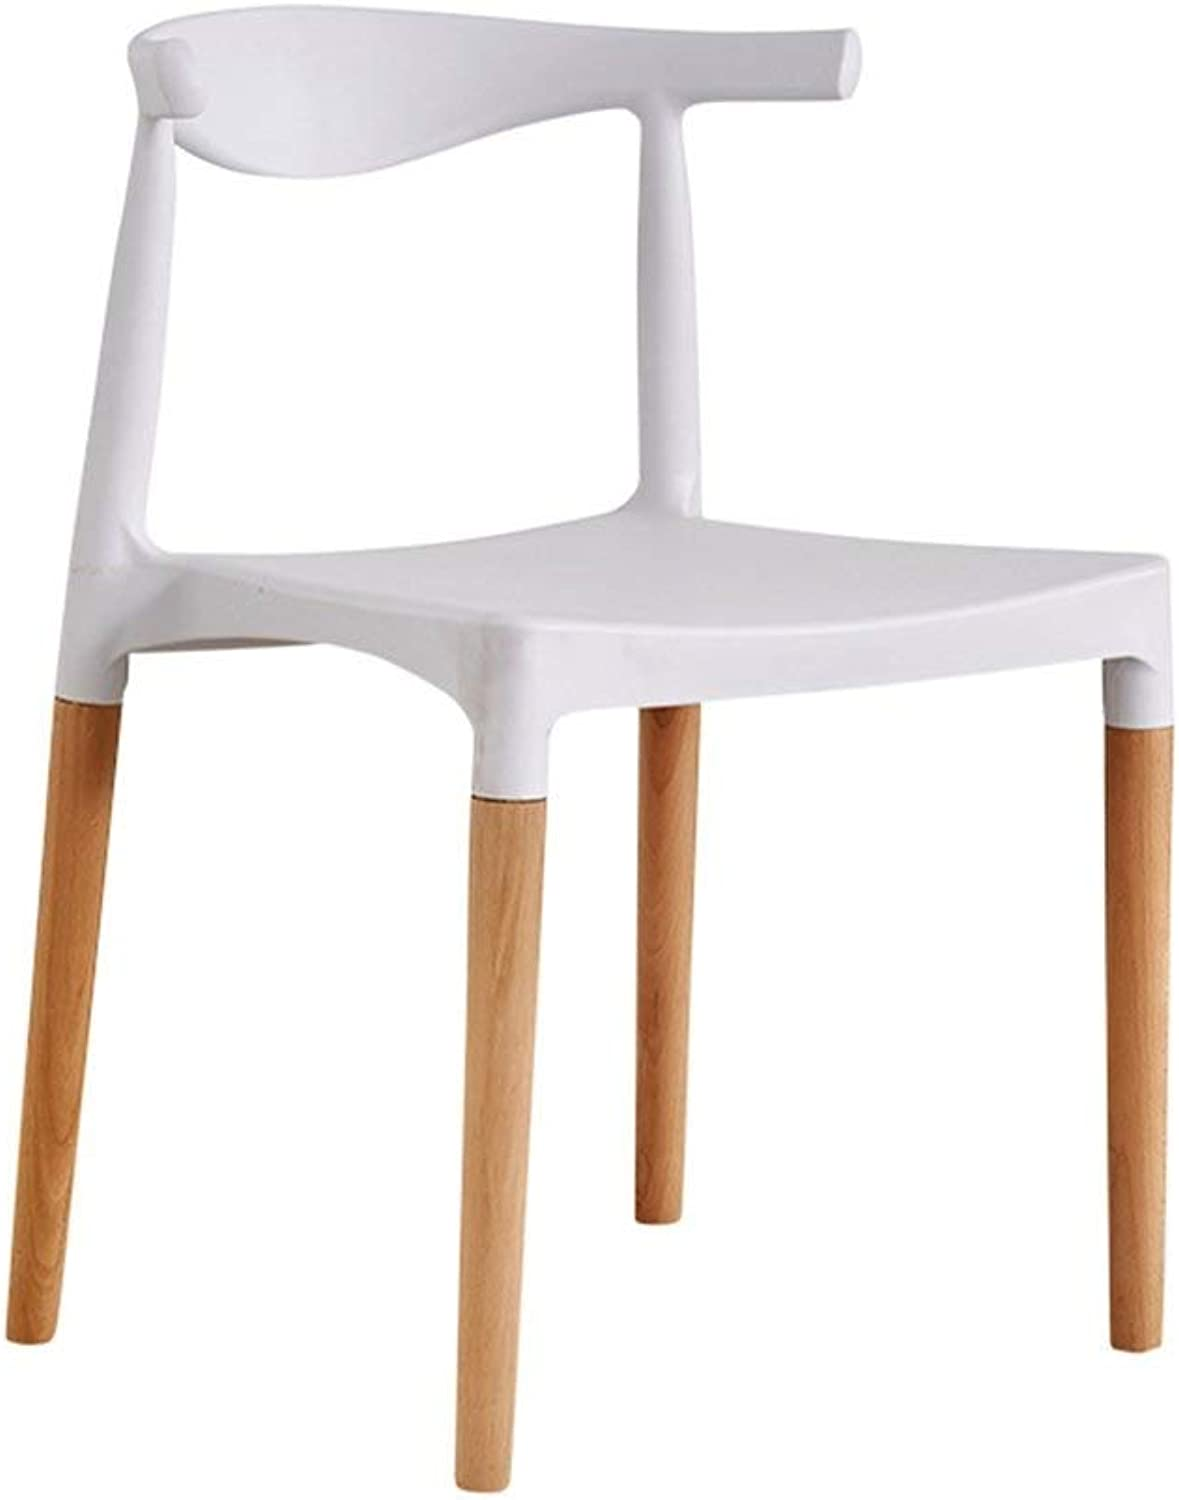 MMAXZ Solid Wood Dining Chair, Plastic Breakfast Stool Home Bar Chair Creative with Backrest Chair Reception Chair Adult Computer Chair White, for Kitchen, Restaurant, Cafe, Bar